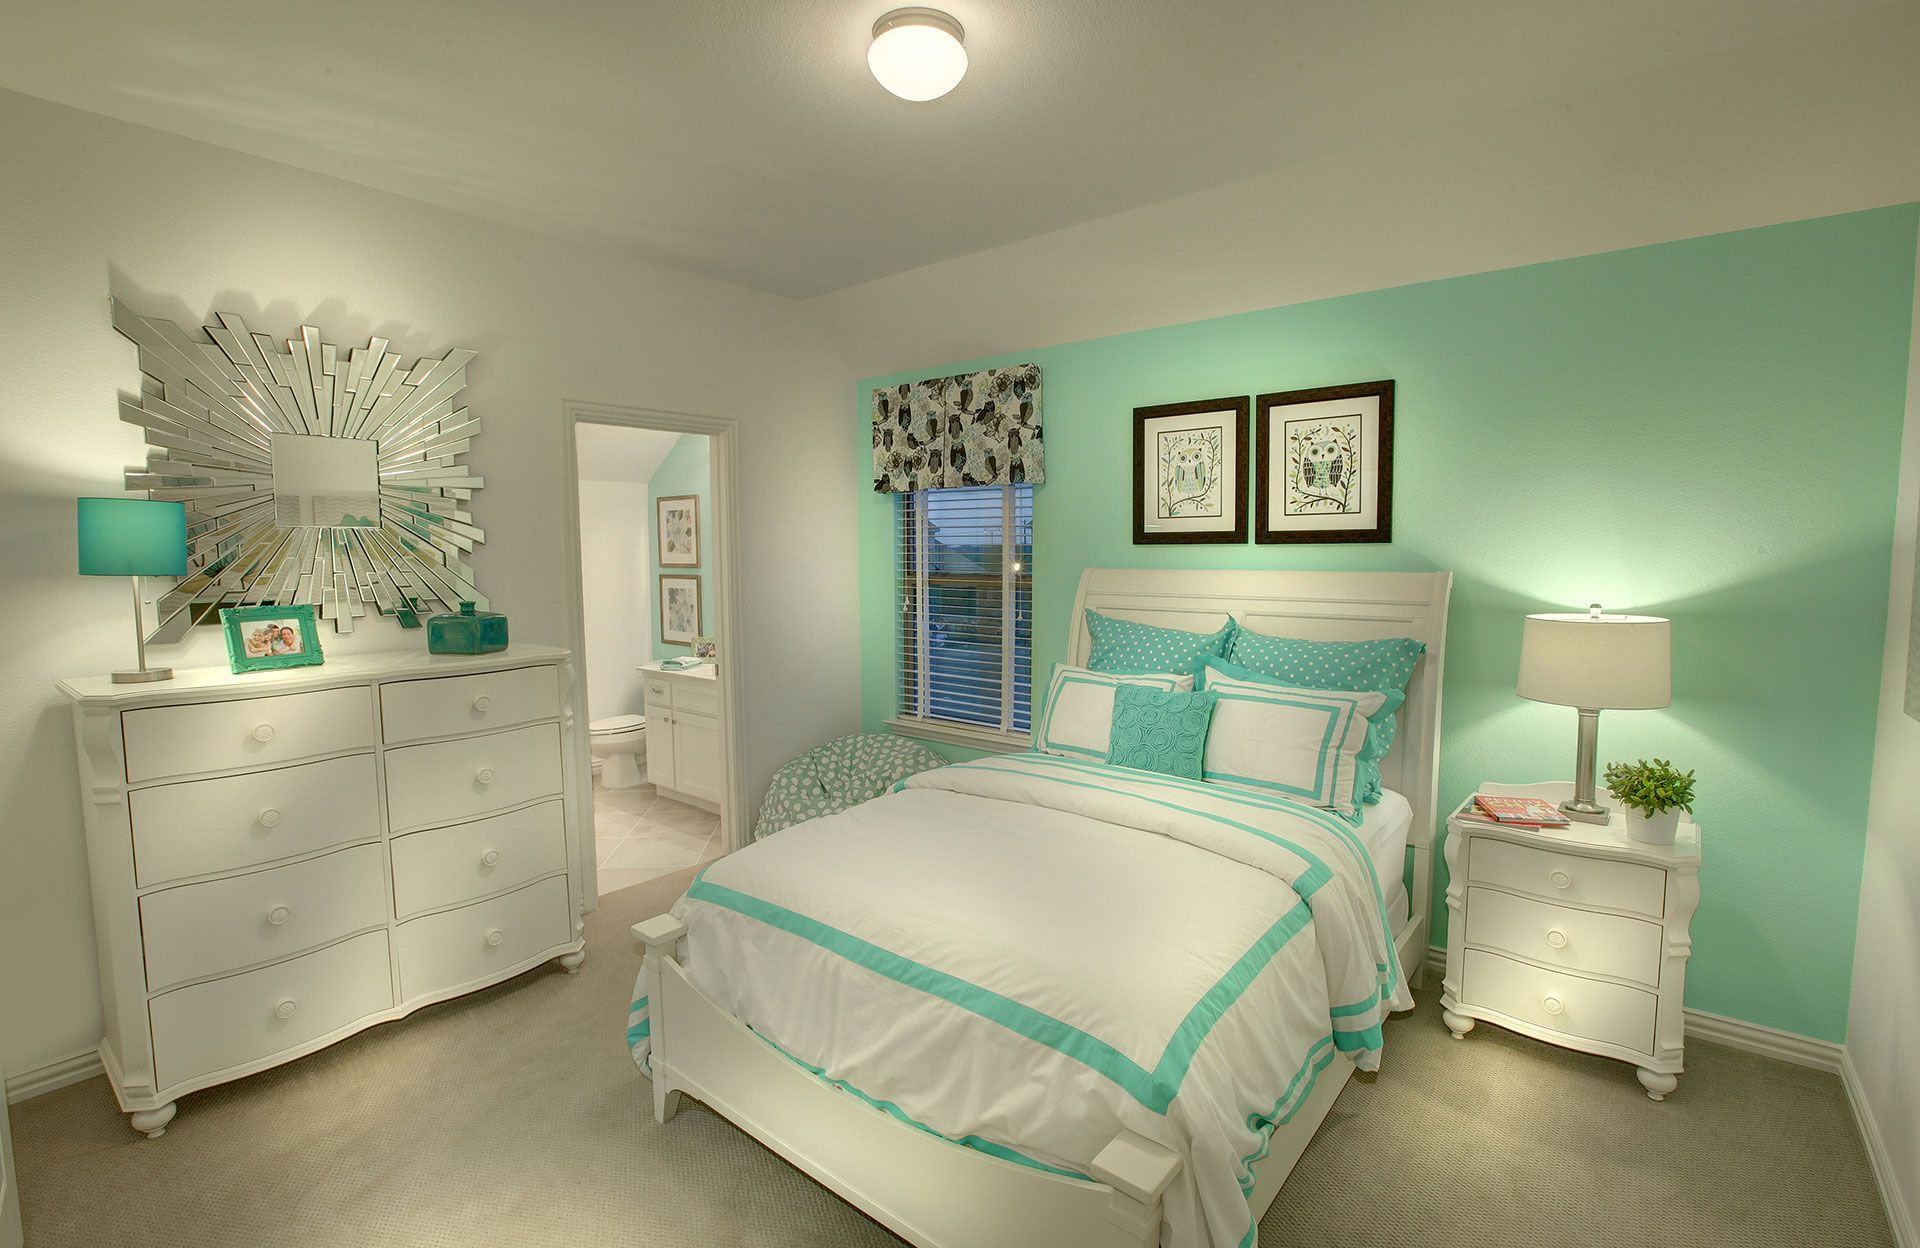 Pin by Courtney Parrish on Bedrooms in 2019 | Mint green rooms ...